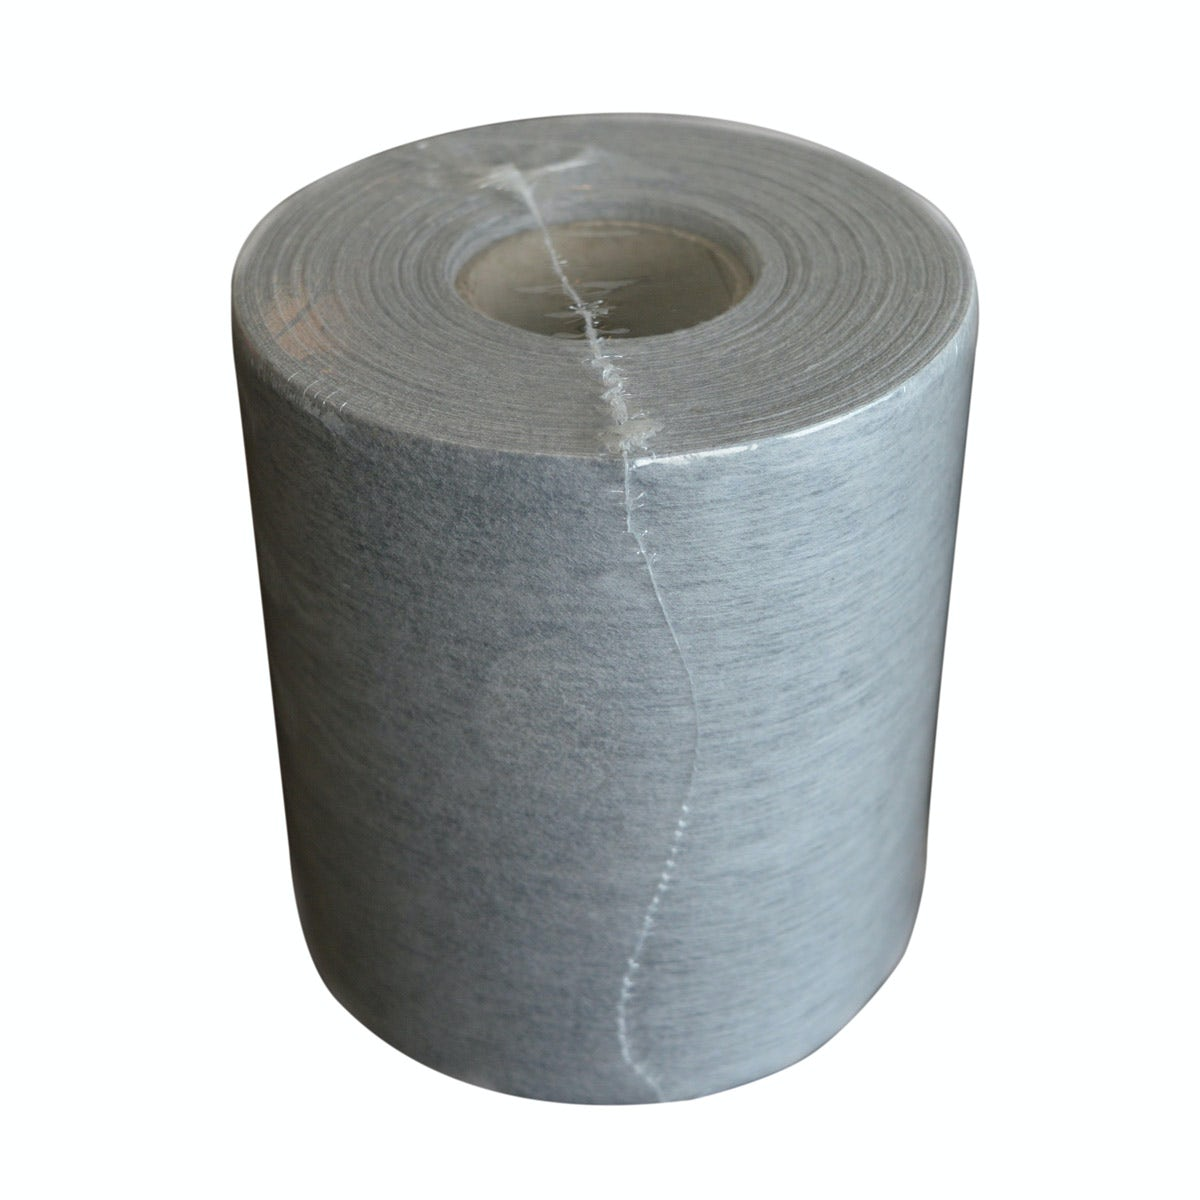 Warmup DCM-Pro waterproofing tape 10m